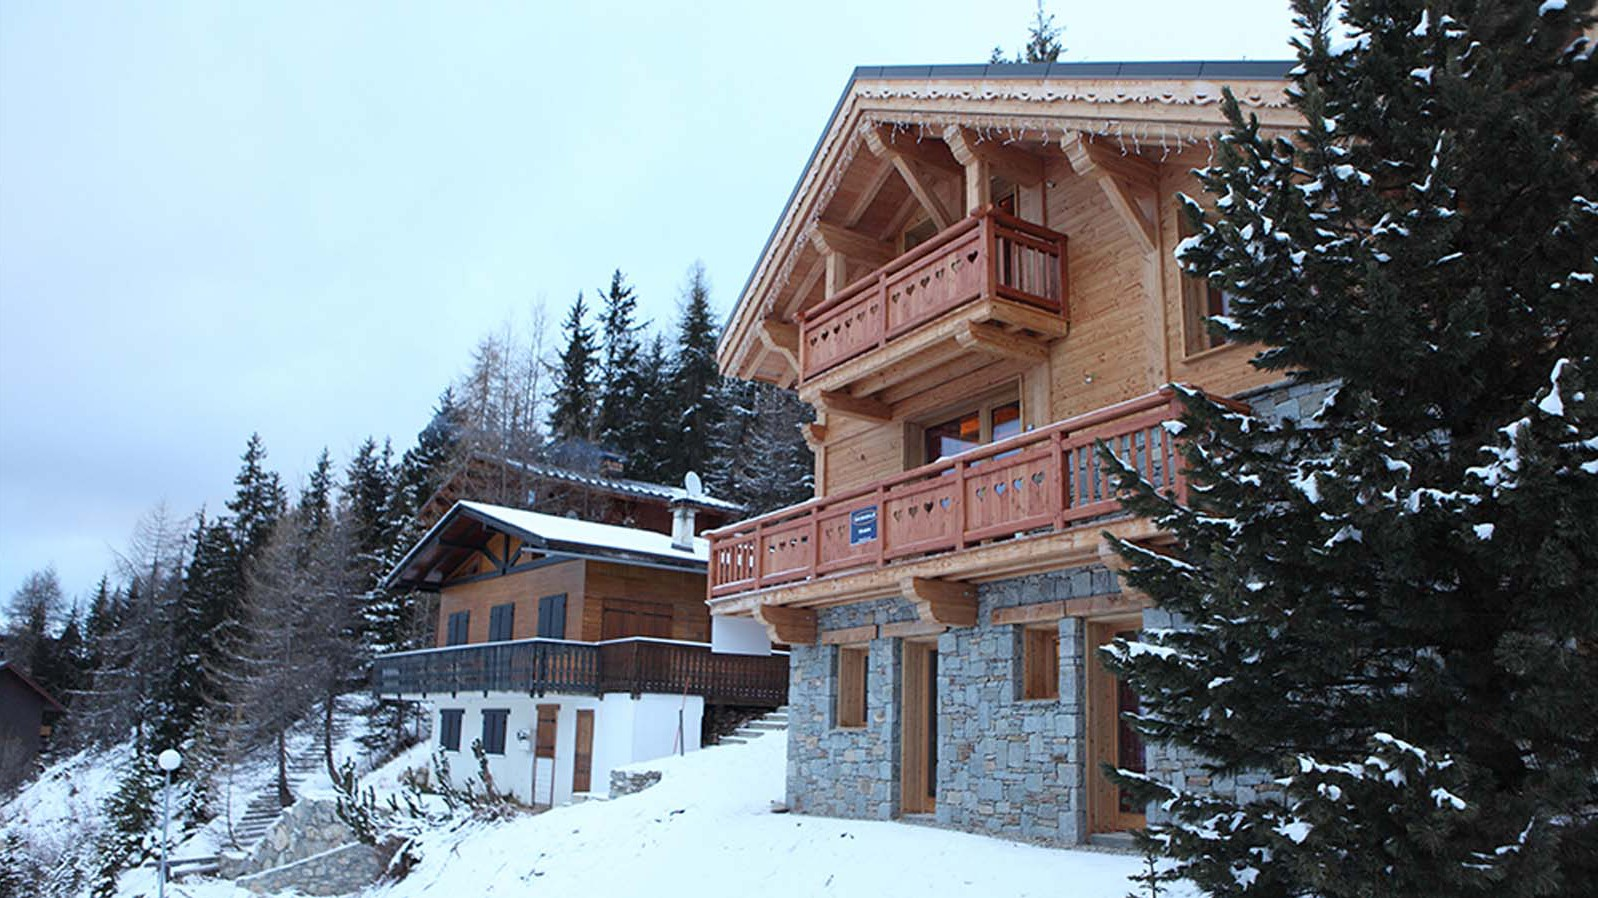 Snowy Exterior of Chalet Klosters - Ski Chalet in La Plagne, France